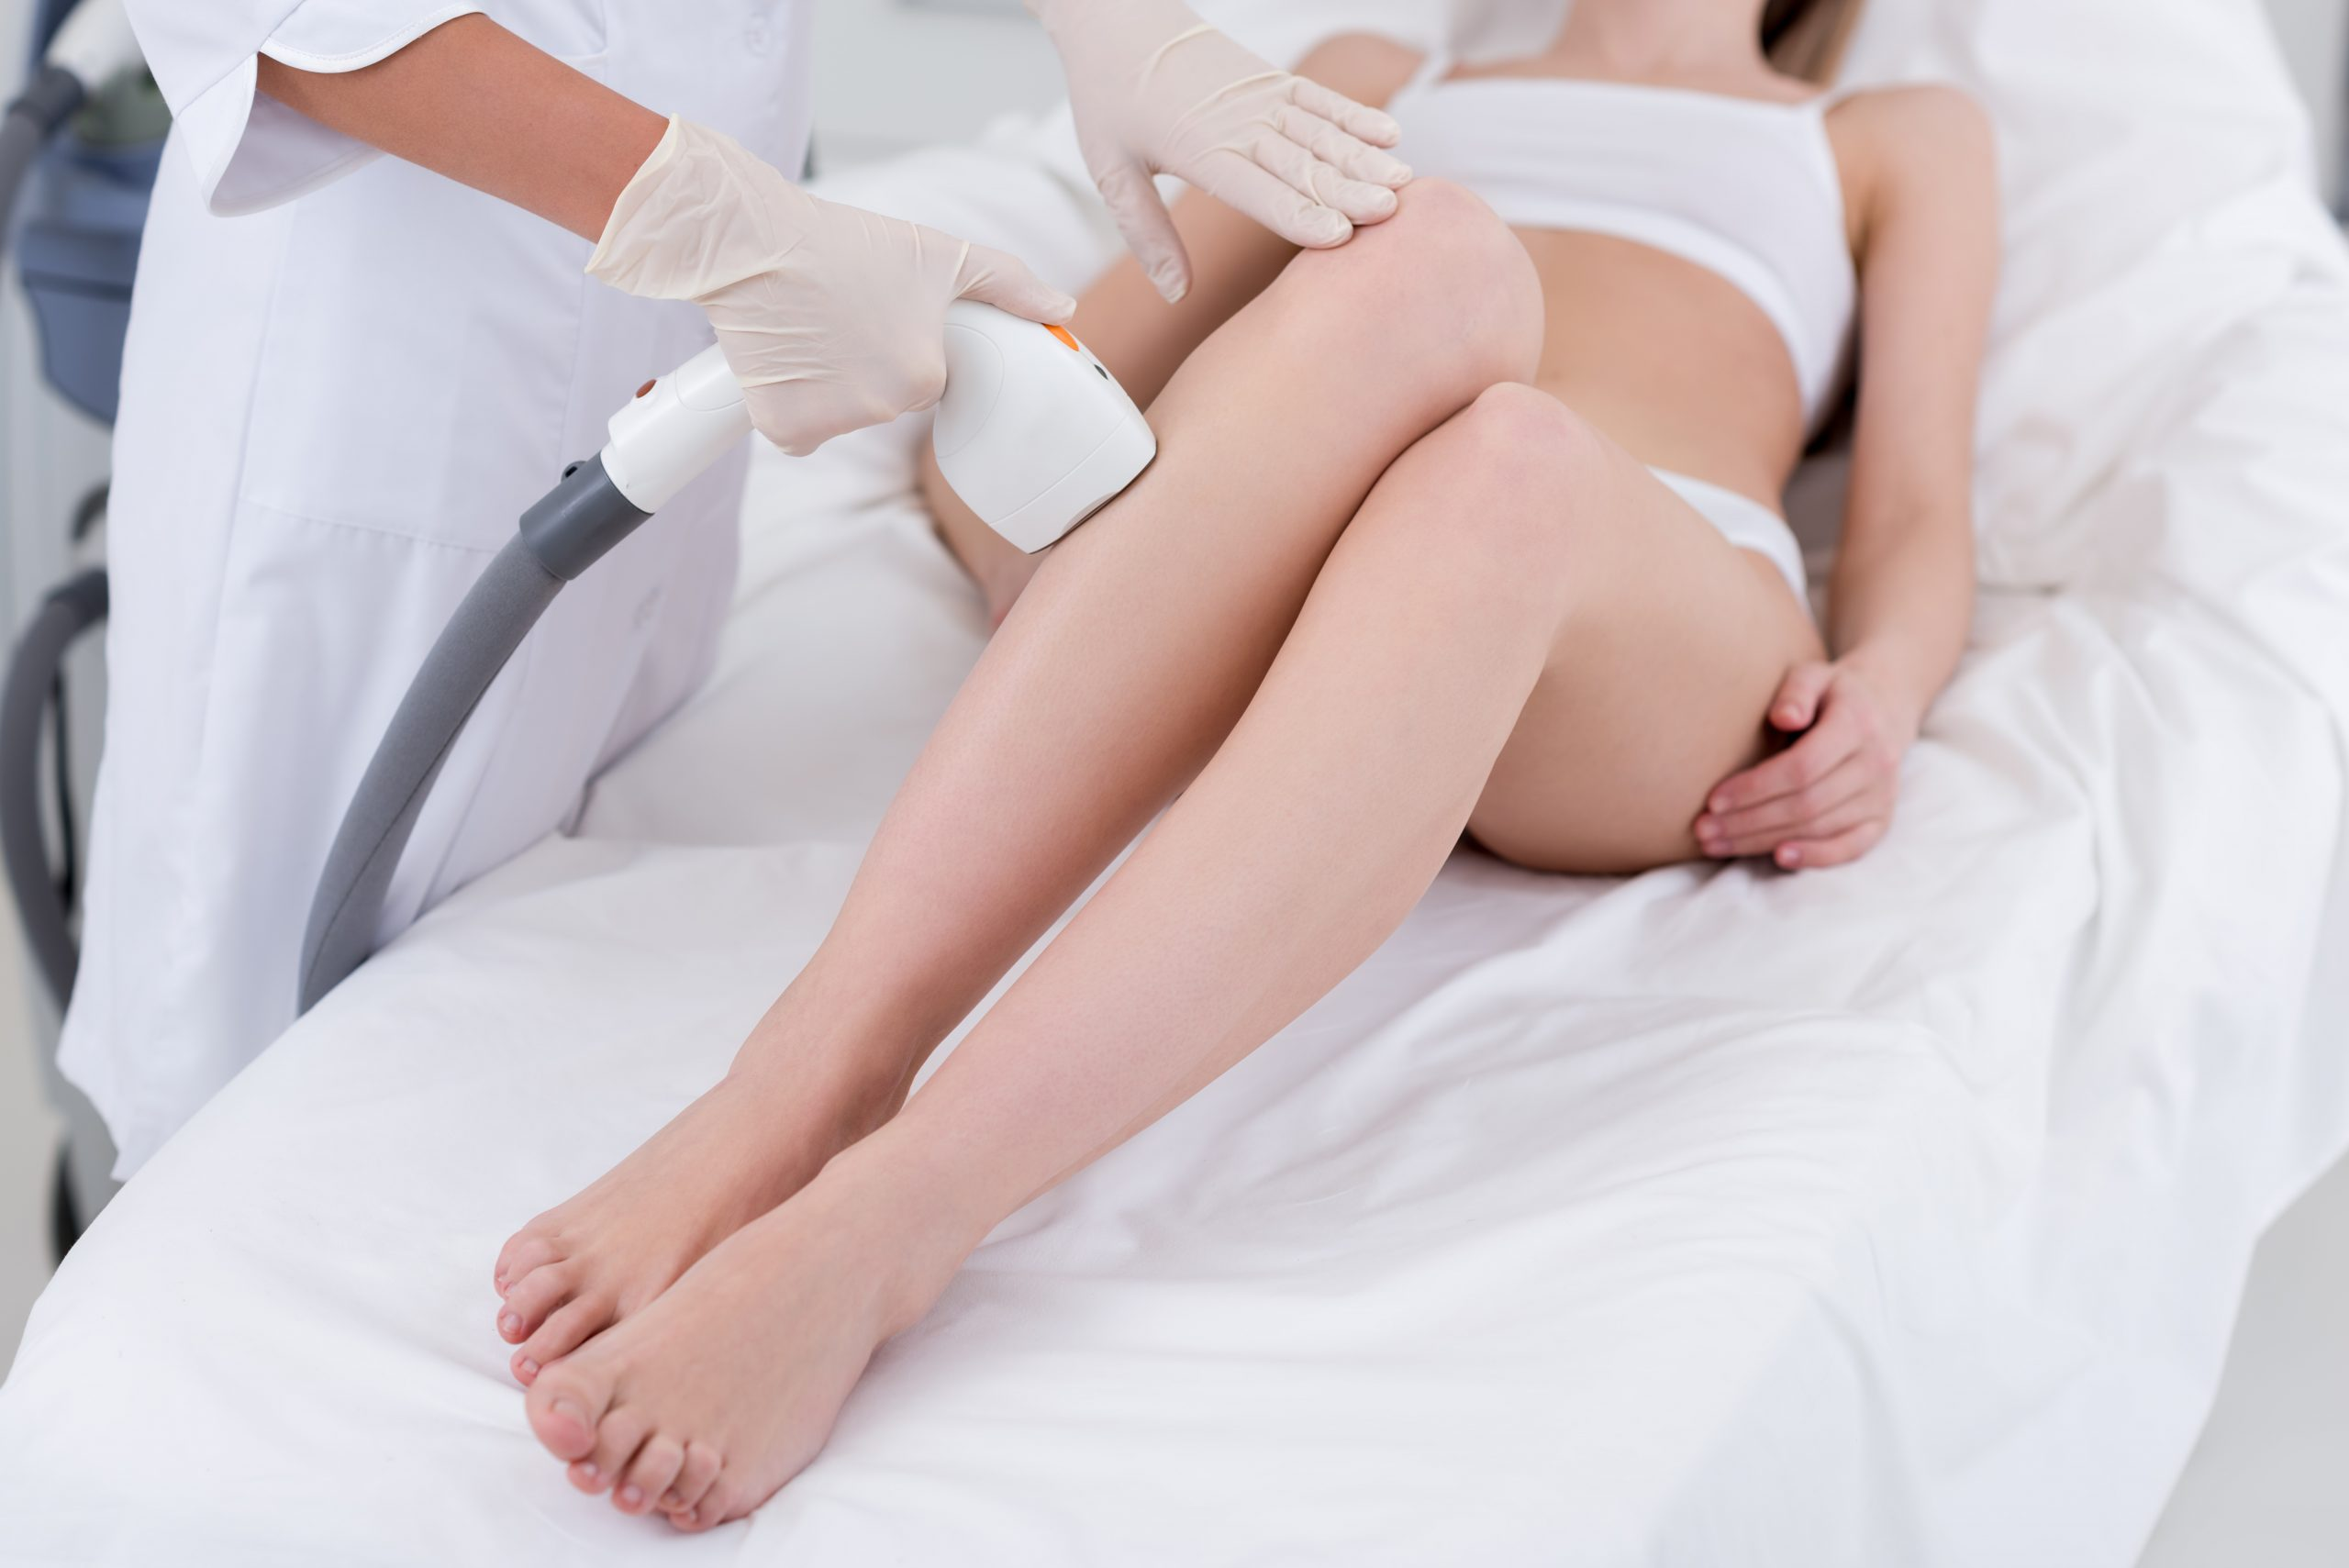 a woman receiving laser hair removal treatment on her legs